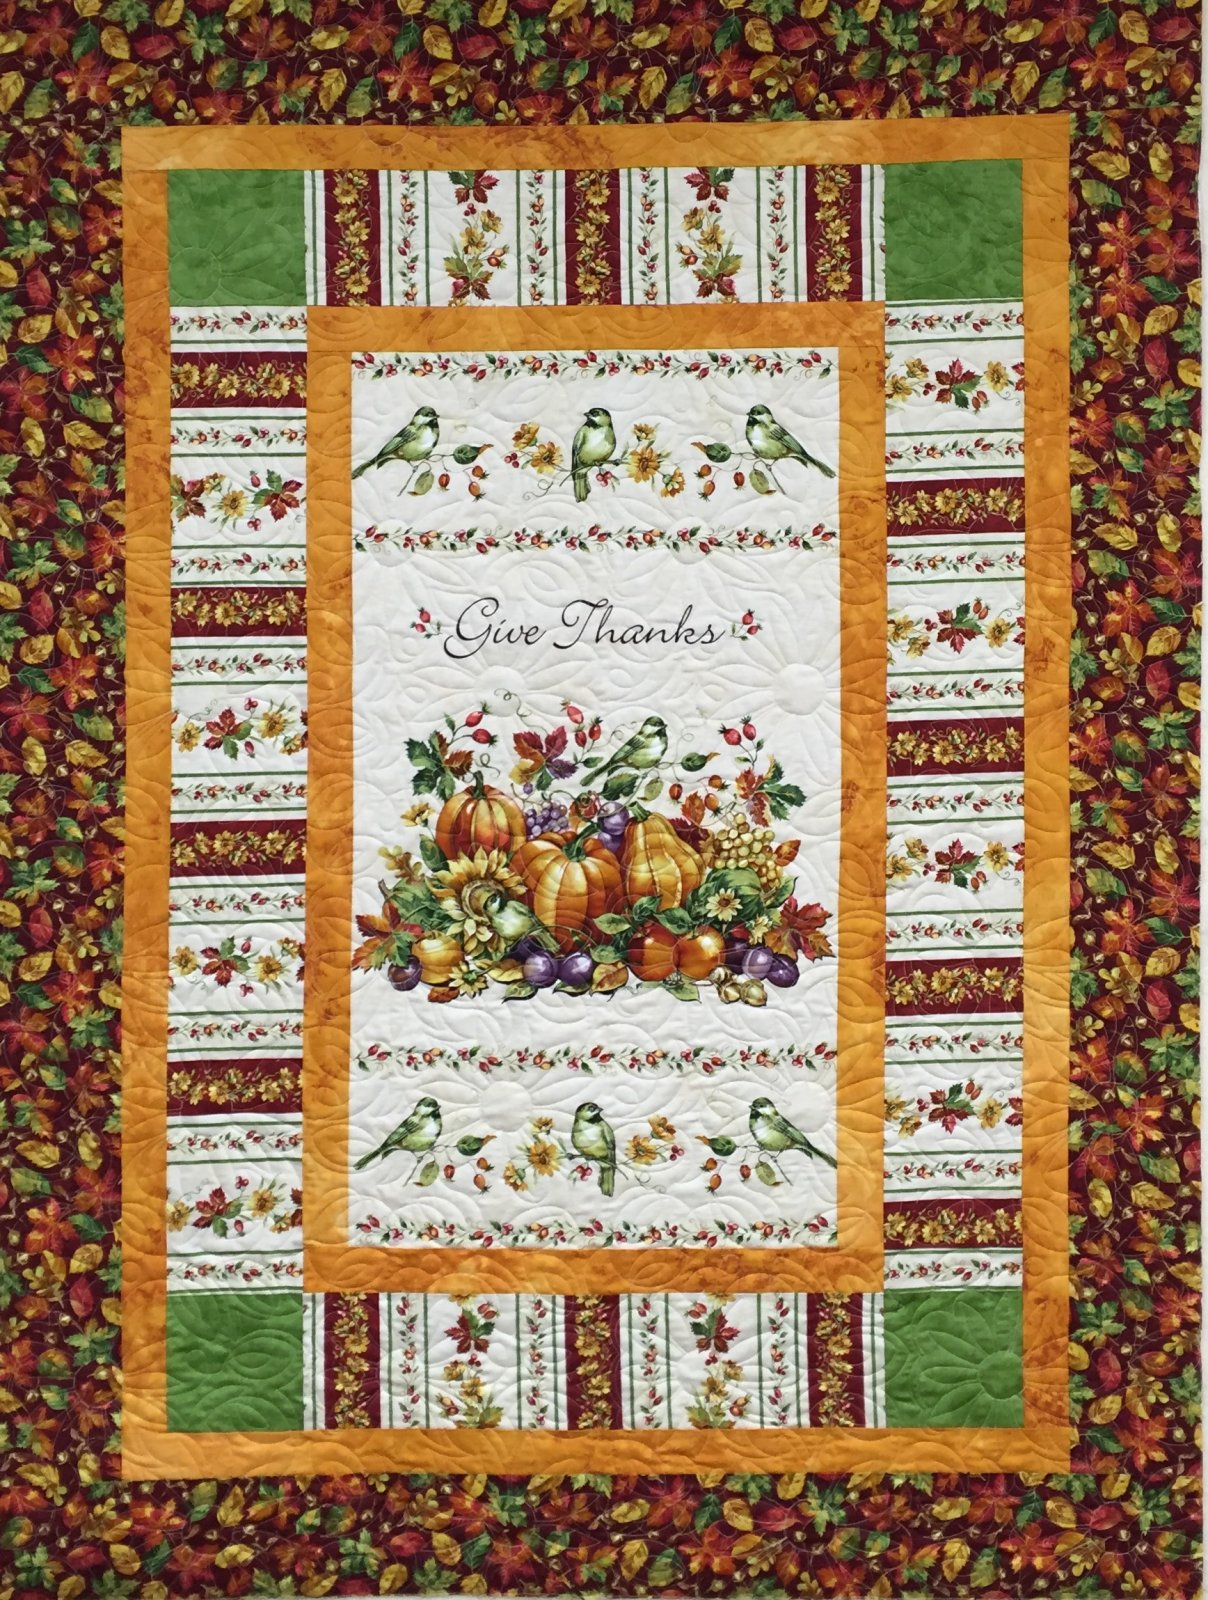 Give Thanks Quilt 54.5 x 71.5